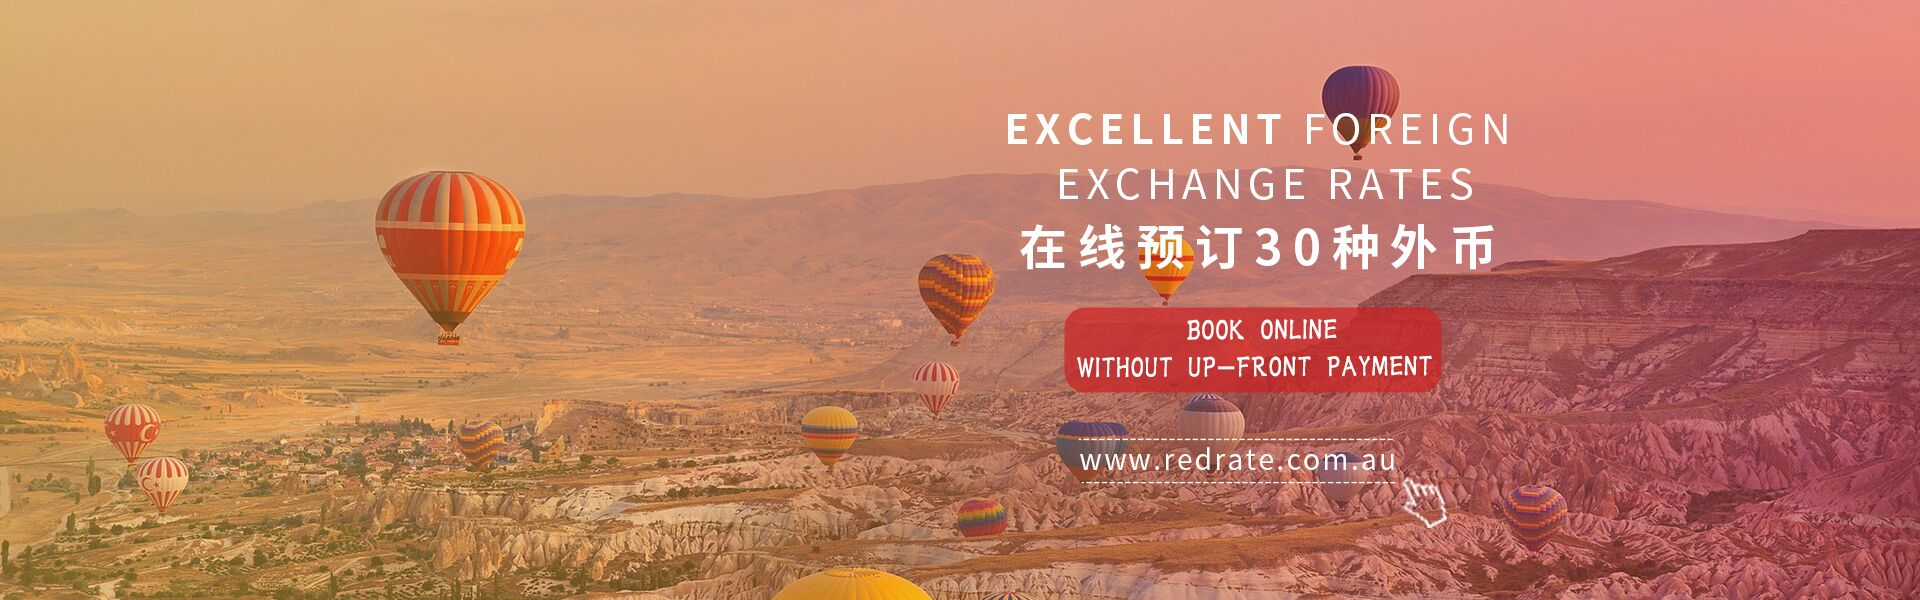 RedRate Exchange - Currency Exchange, Foreign Currency, Red